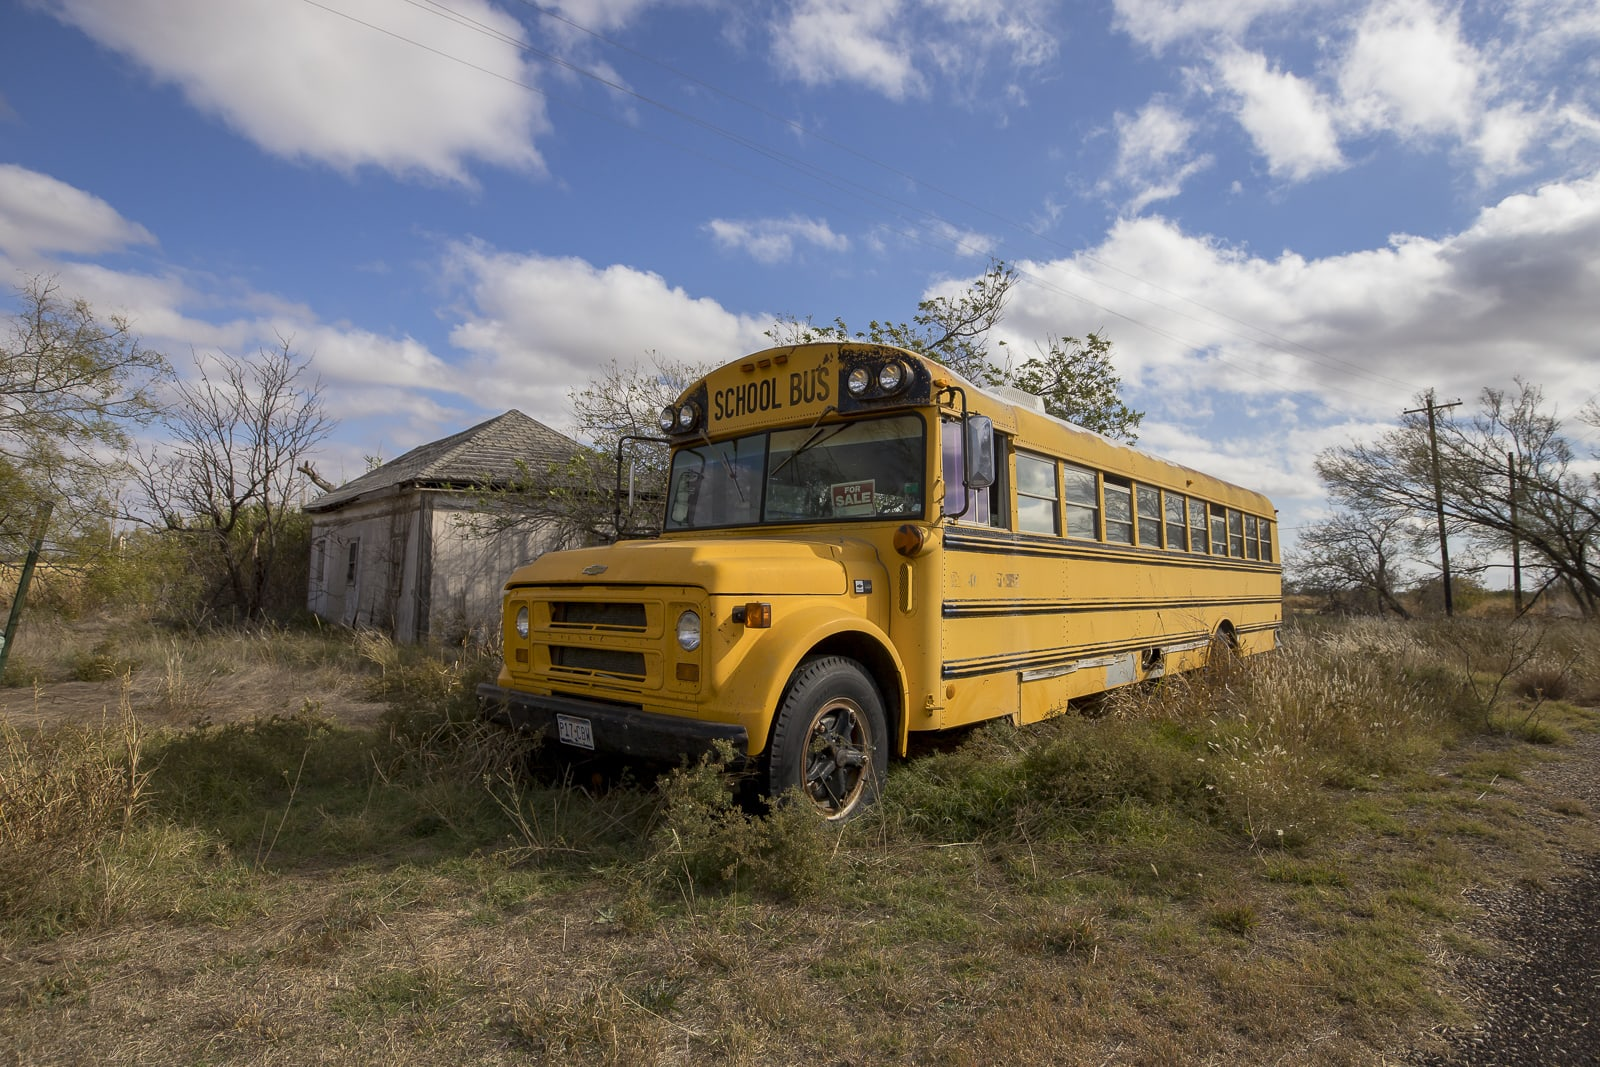 Abandoned School Bus in Texas